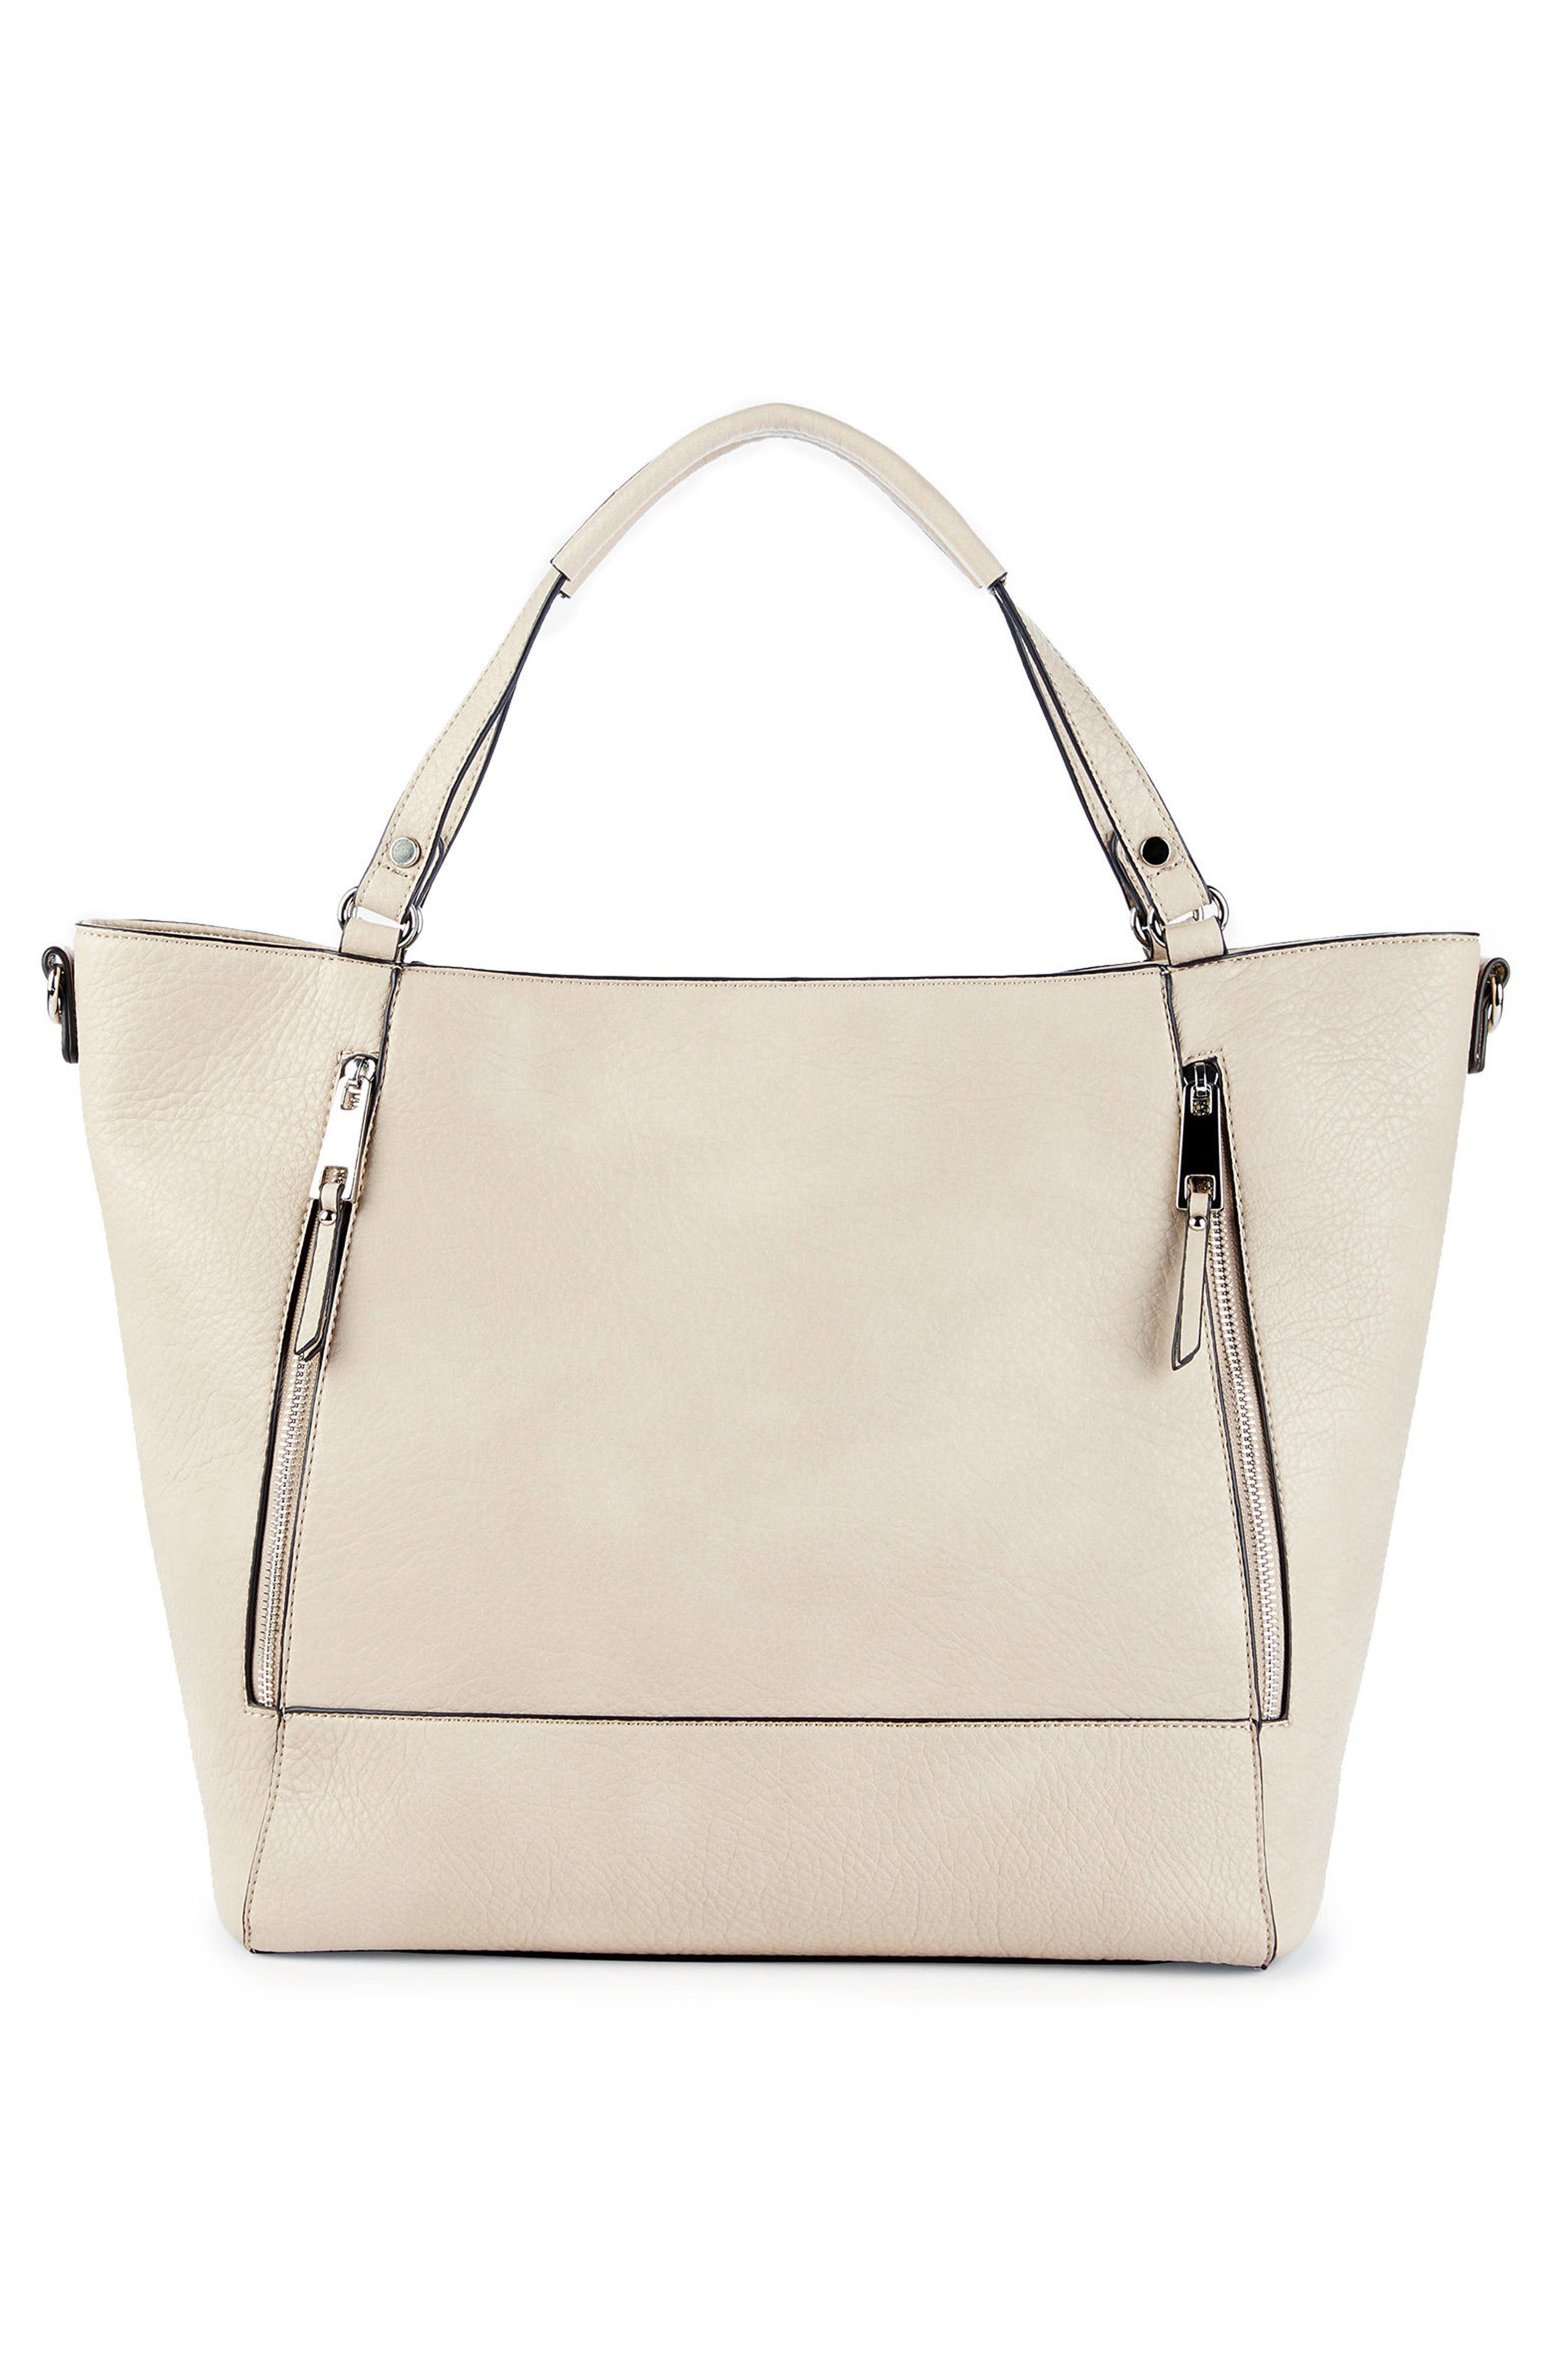 Nera Faux Leather Tote,                         Main,                         color, Sandshell